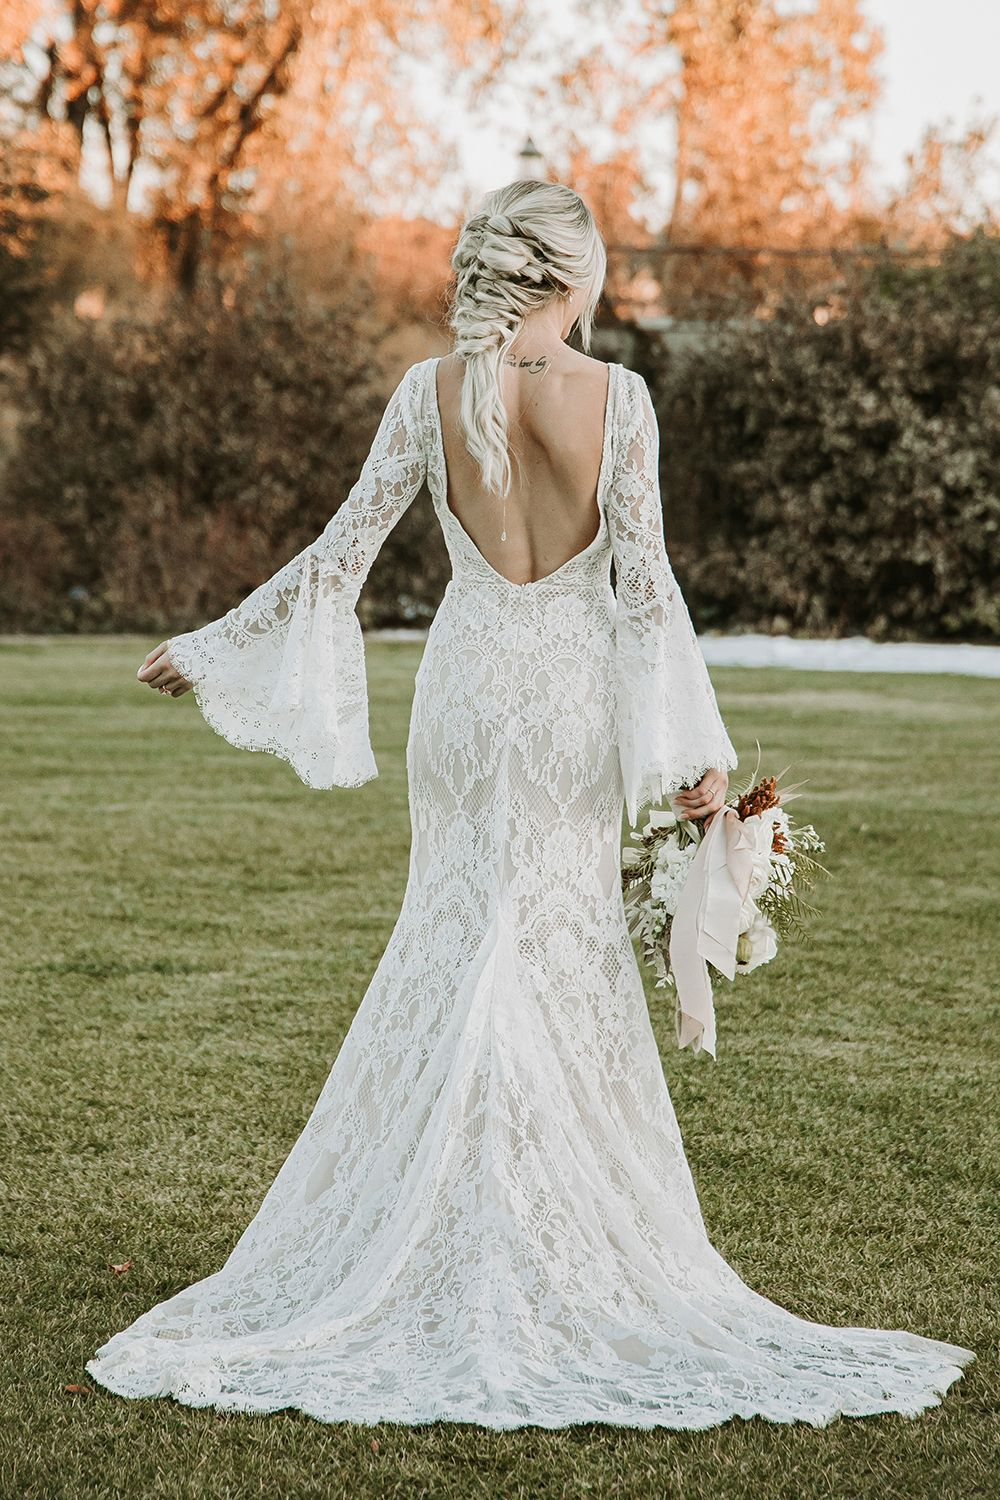 Camo Wedding Backdrops About Design Your Own Wedding Dress Virtual Wedding Dresses Fit And Flare Wedding Dress Lace Mermaid Wedding Dress